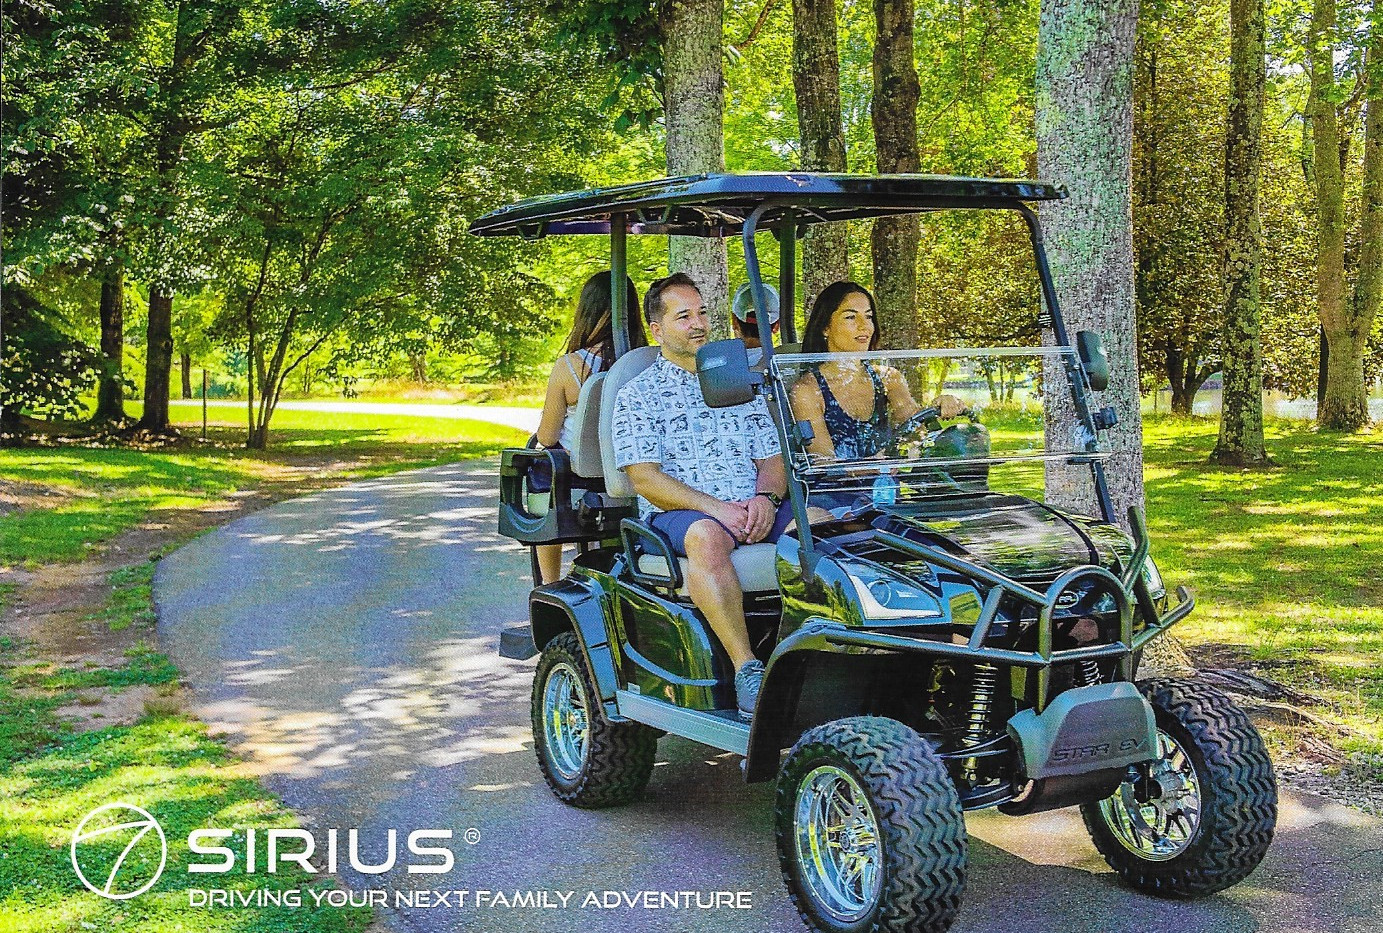 star sirs golf cart 2020 use.jpg